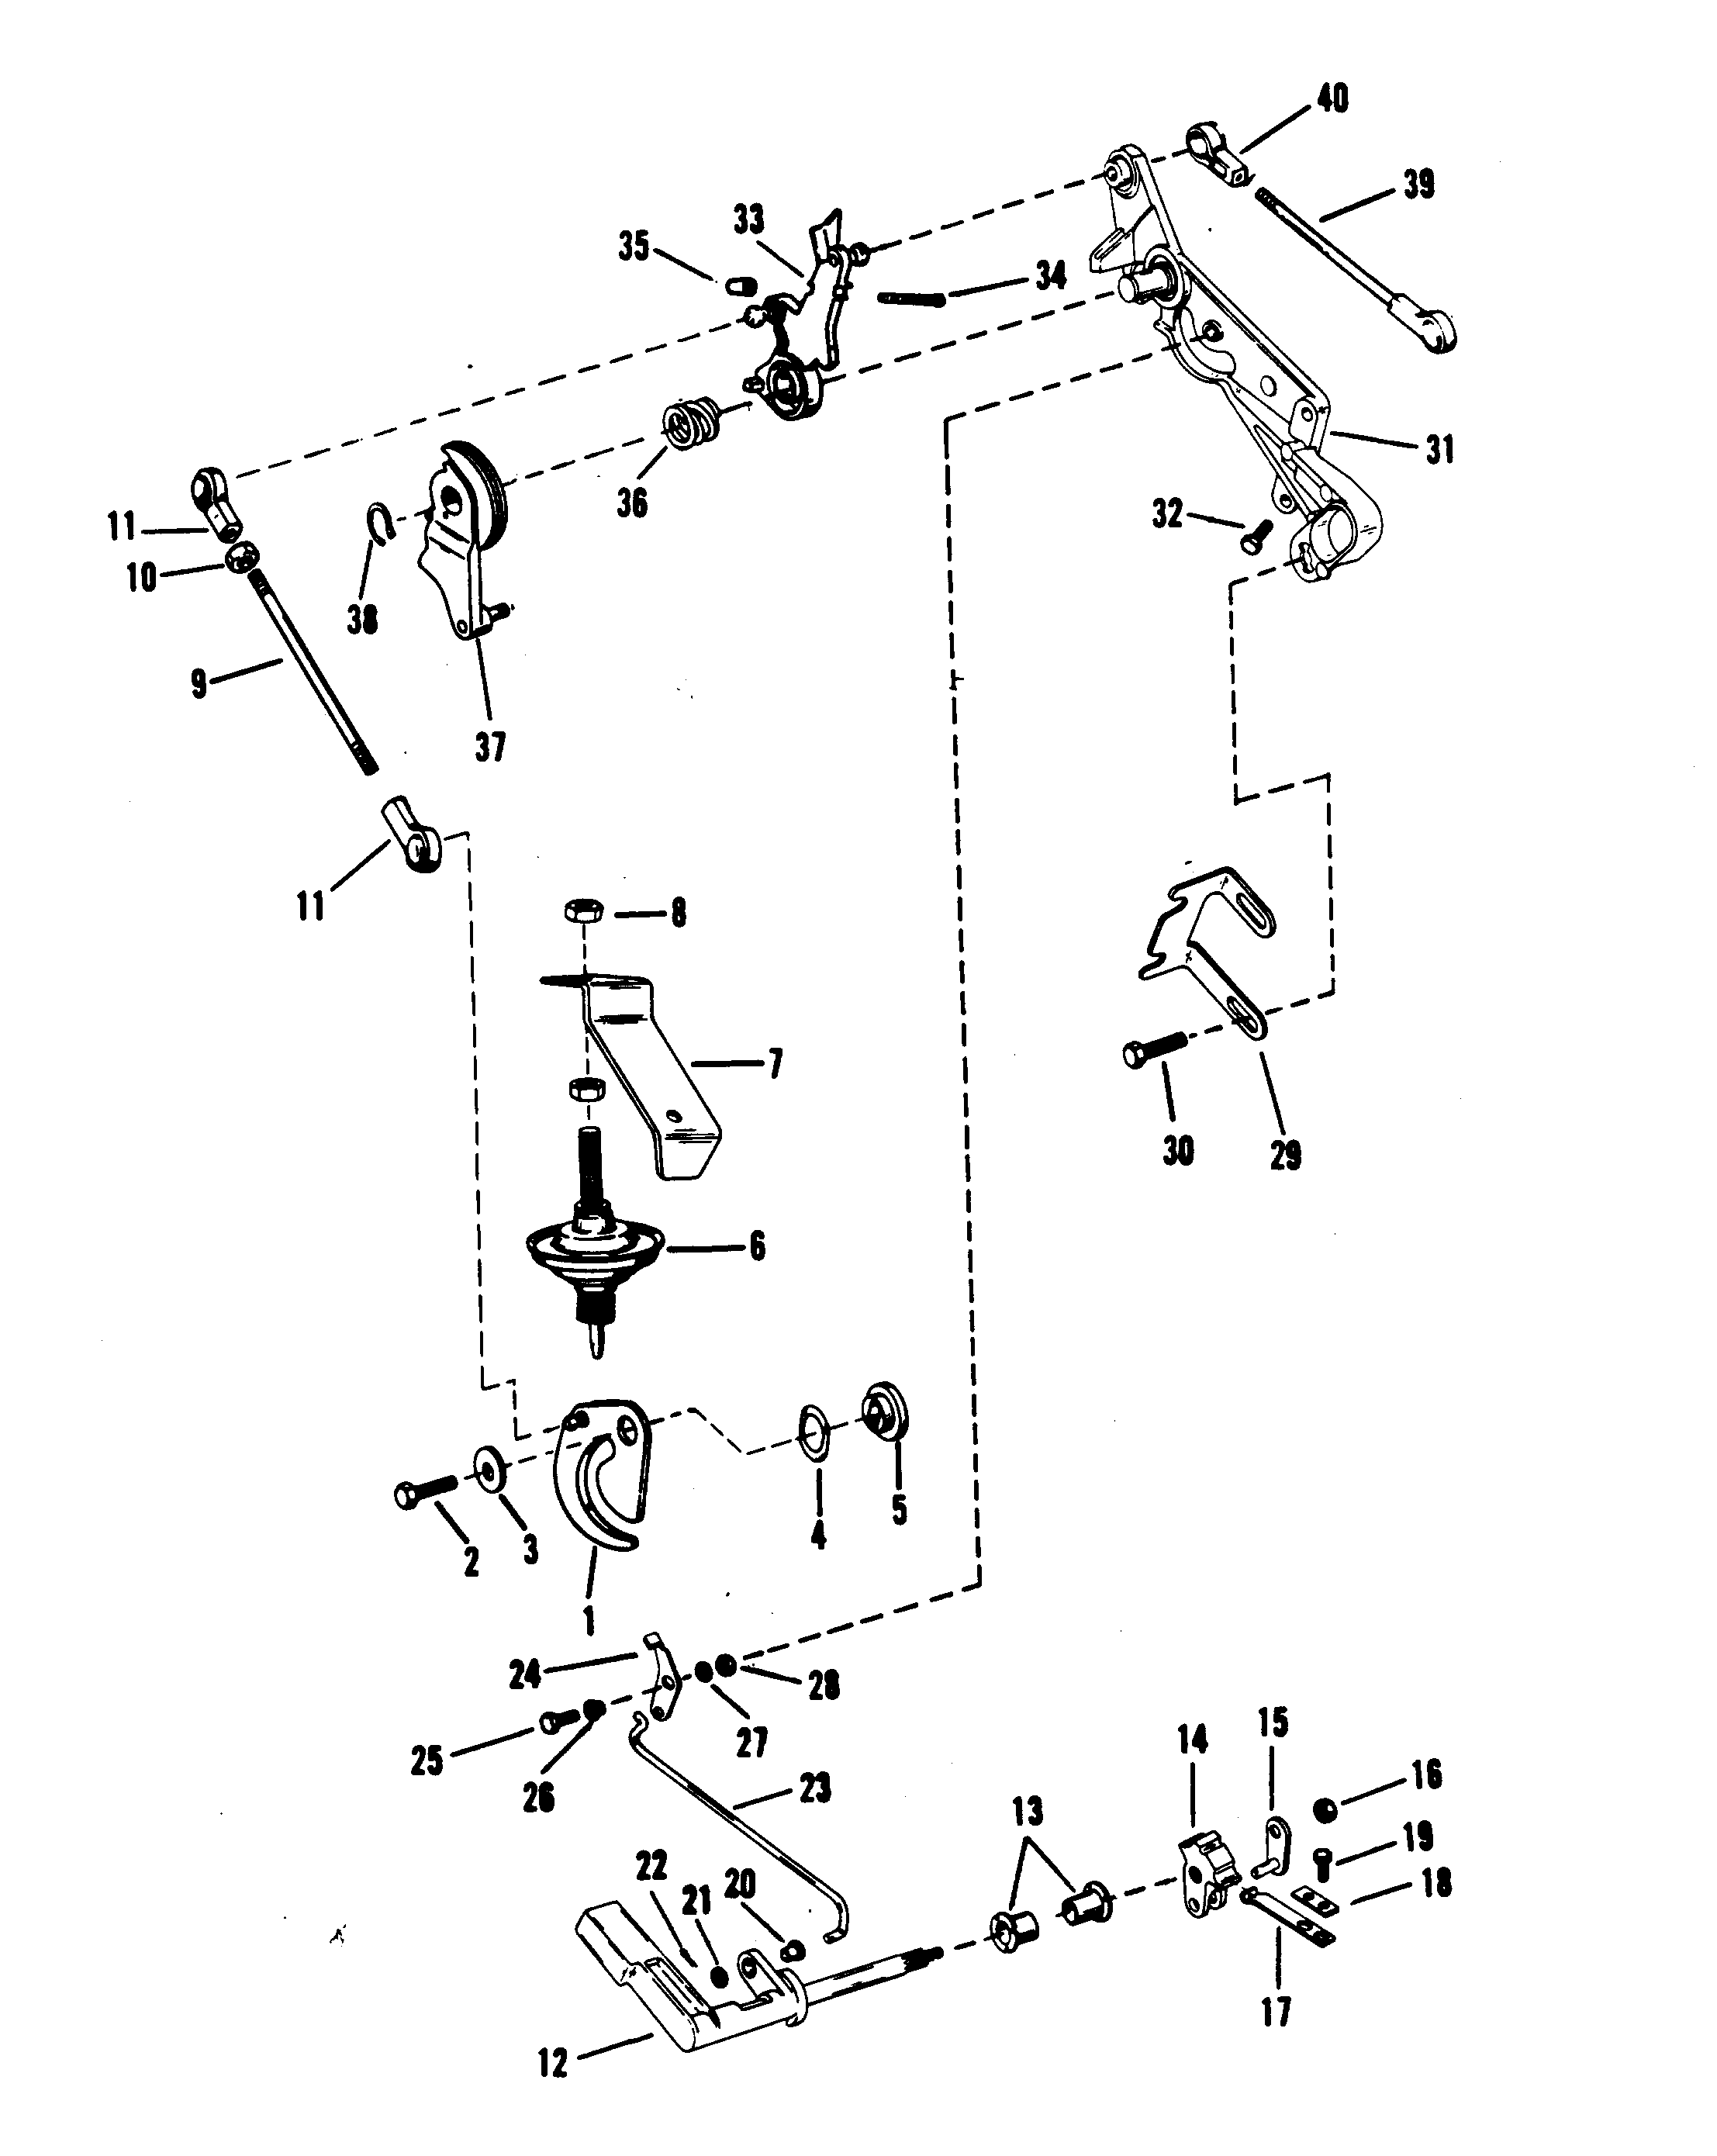 Throttle And Shift Linkage Marinermanual: 30jet 40hp Mercury Outboard Wiring Diagram At Chusao.net